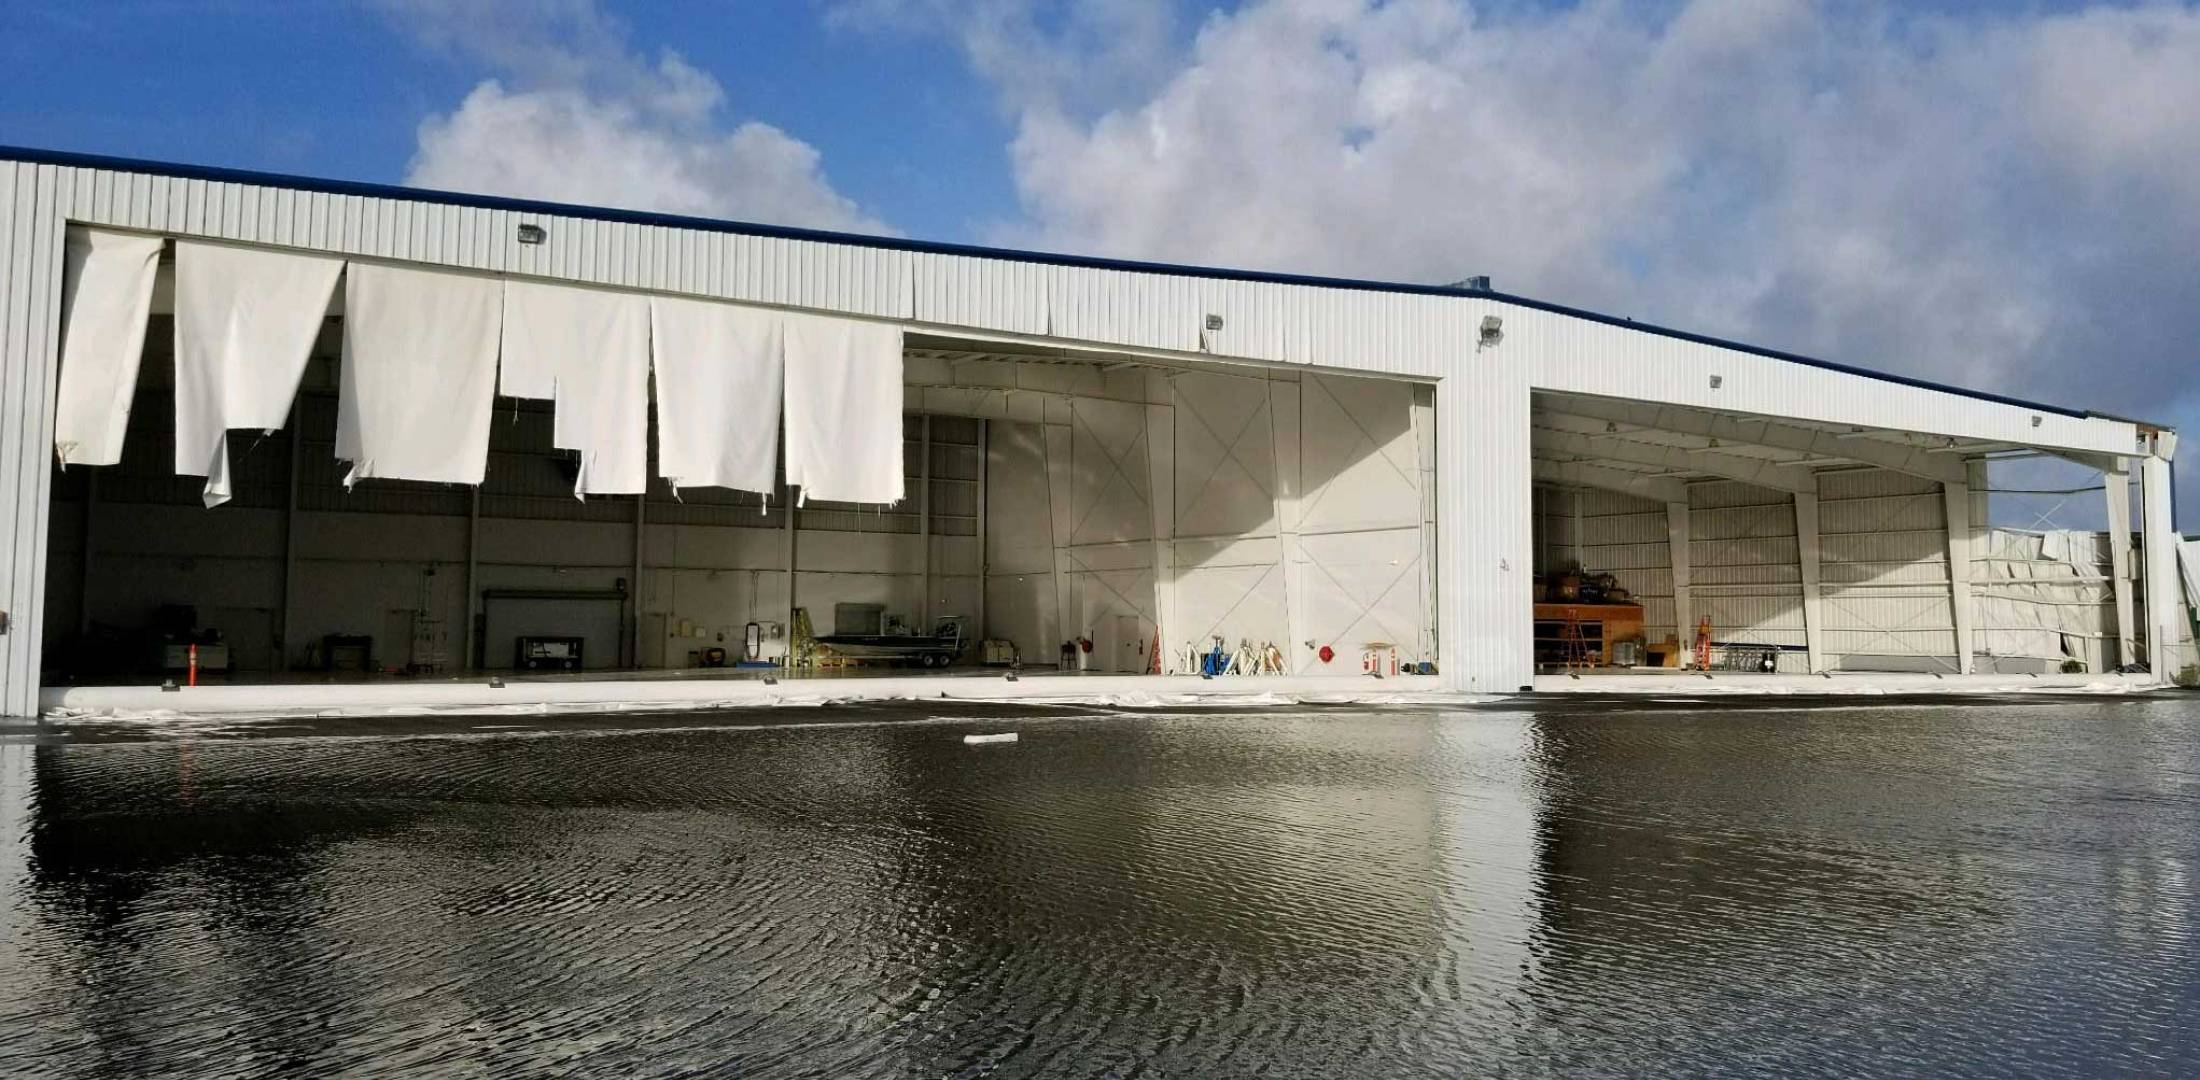 A damaged hangar at Naples Jet Center